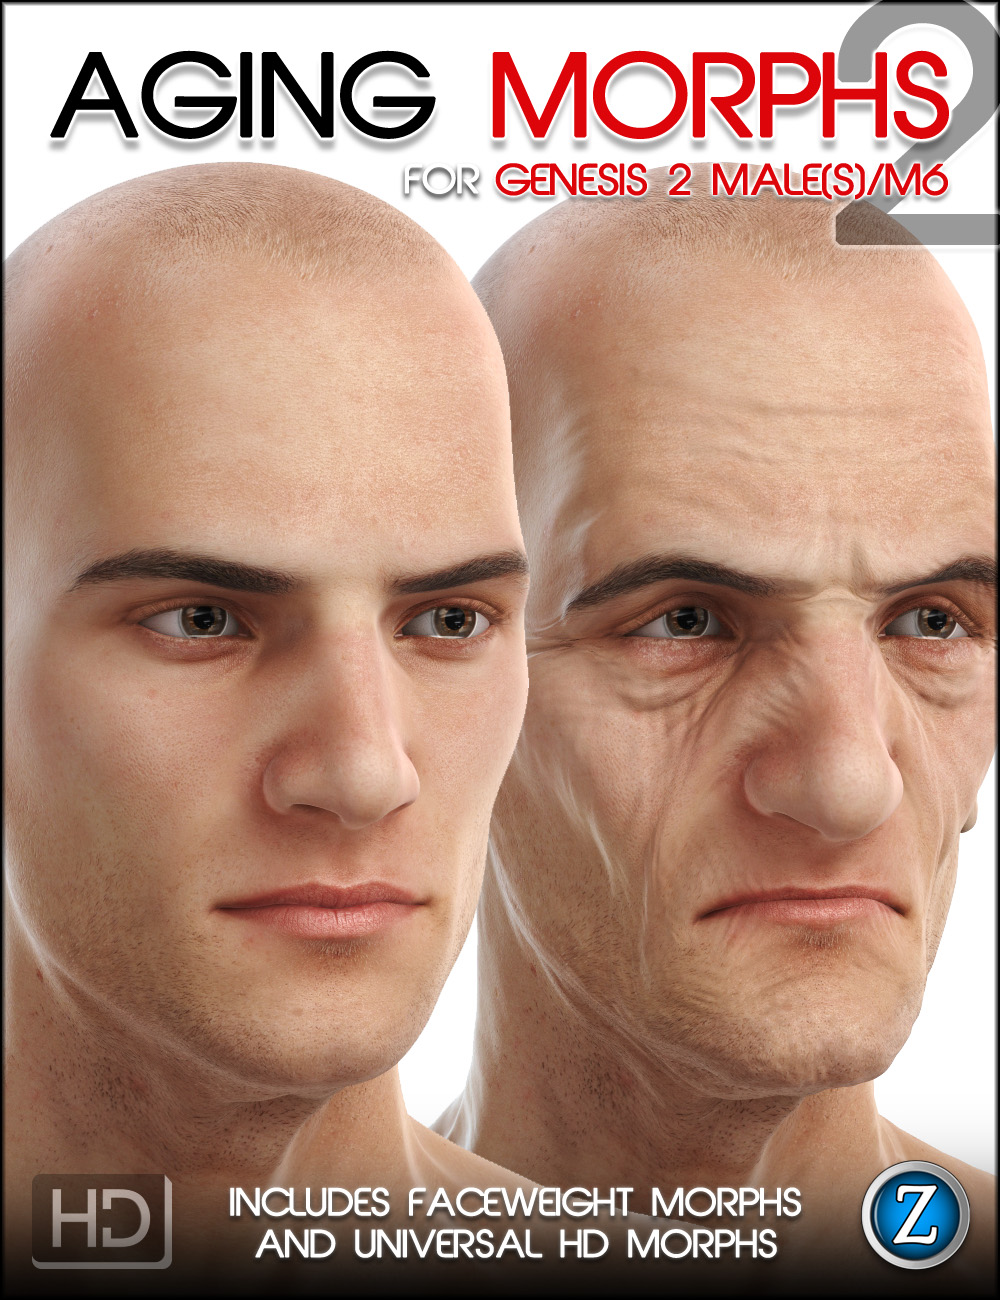 Aging Morphs 2 for Genesis 2 Male(s)/M6 HD by: Zev0, 3D Models by Daz 3D